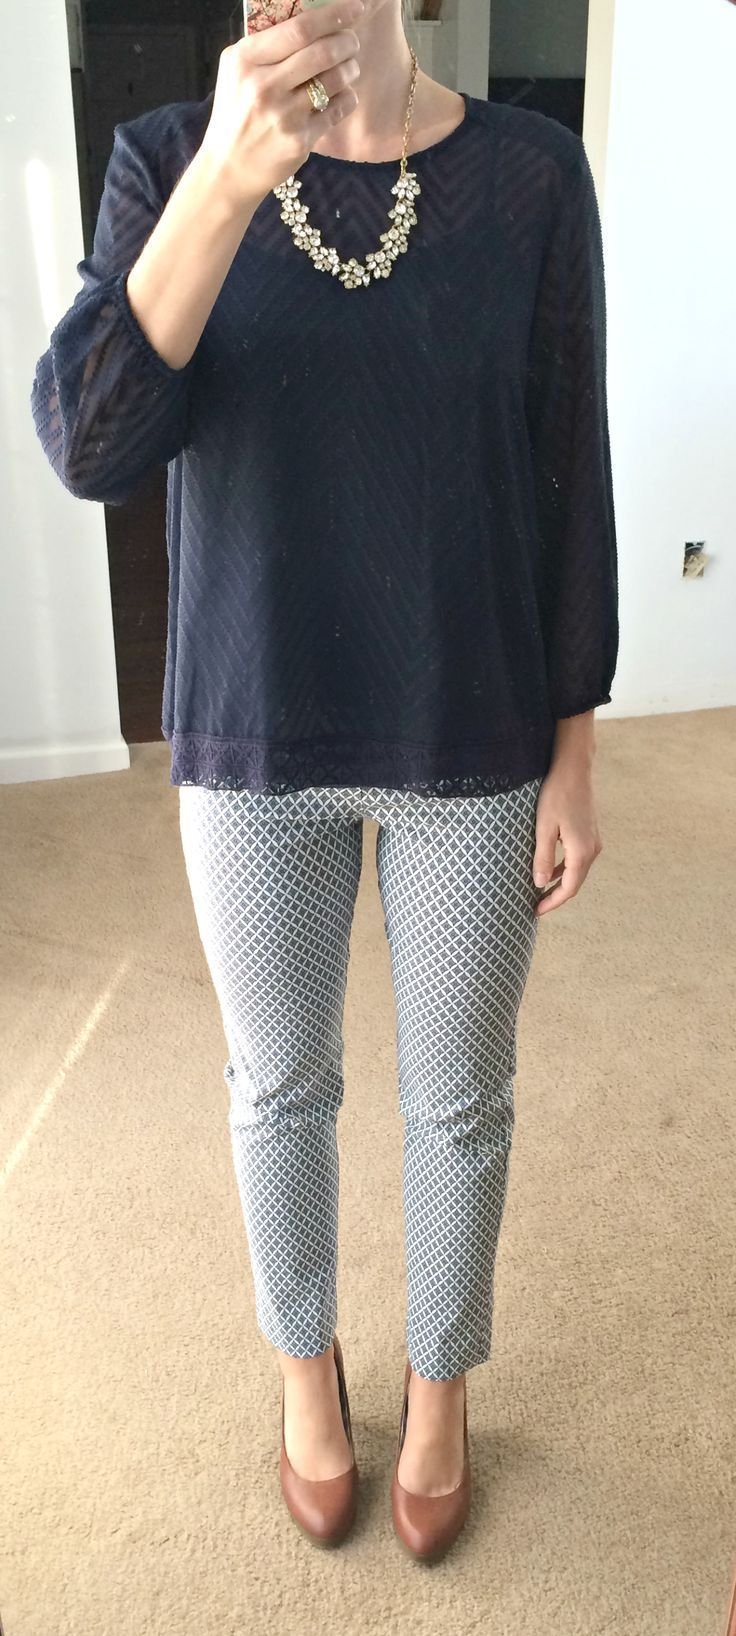 Dear Stitch Fix Stylist, The top is so pretty! I love the pattern and the details in the edging I also love the pants! They remind me of the first pair of pants that I received from my first stitch fix. I regret sending them back.-Contreras